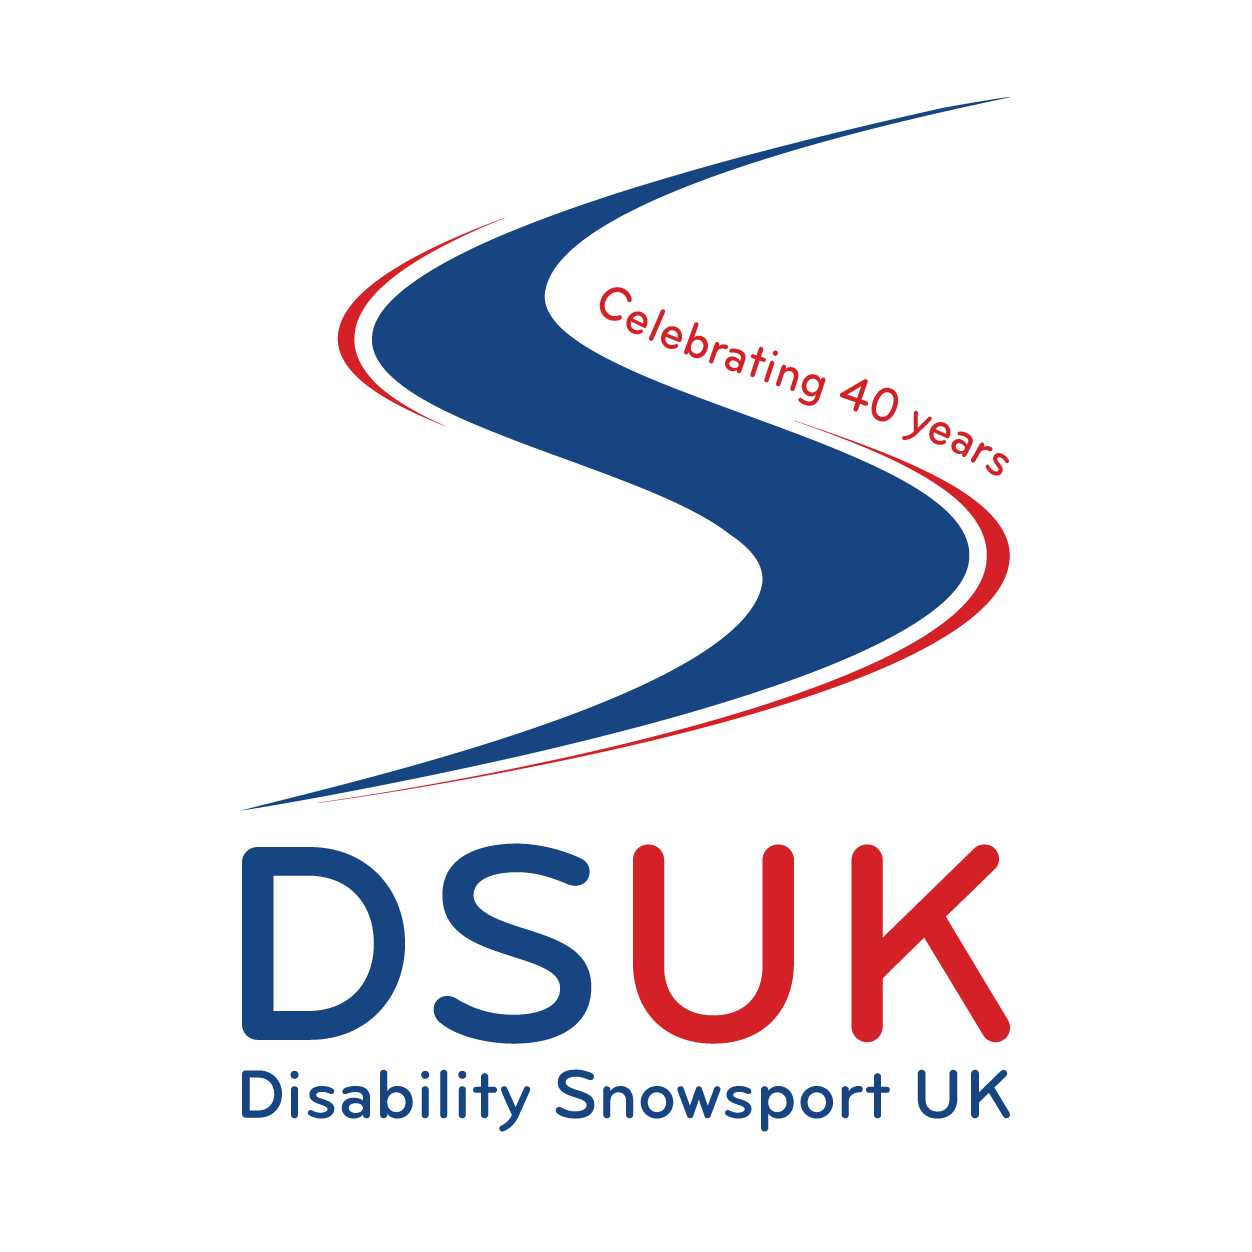 Copy of Copy of Copy of Copy of Disability Snowsport uk